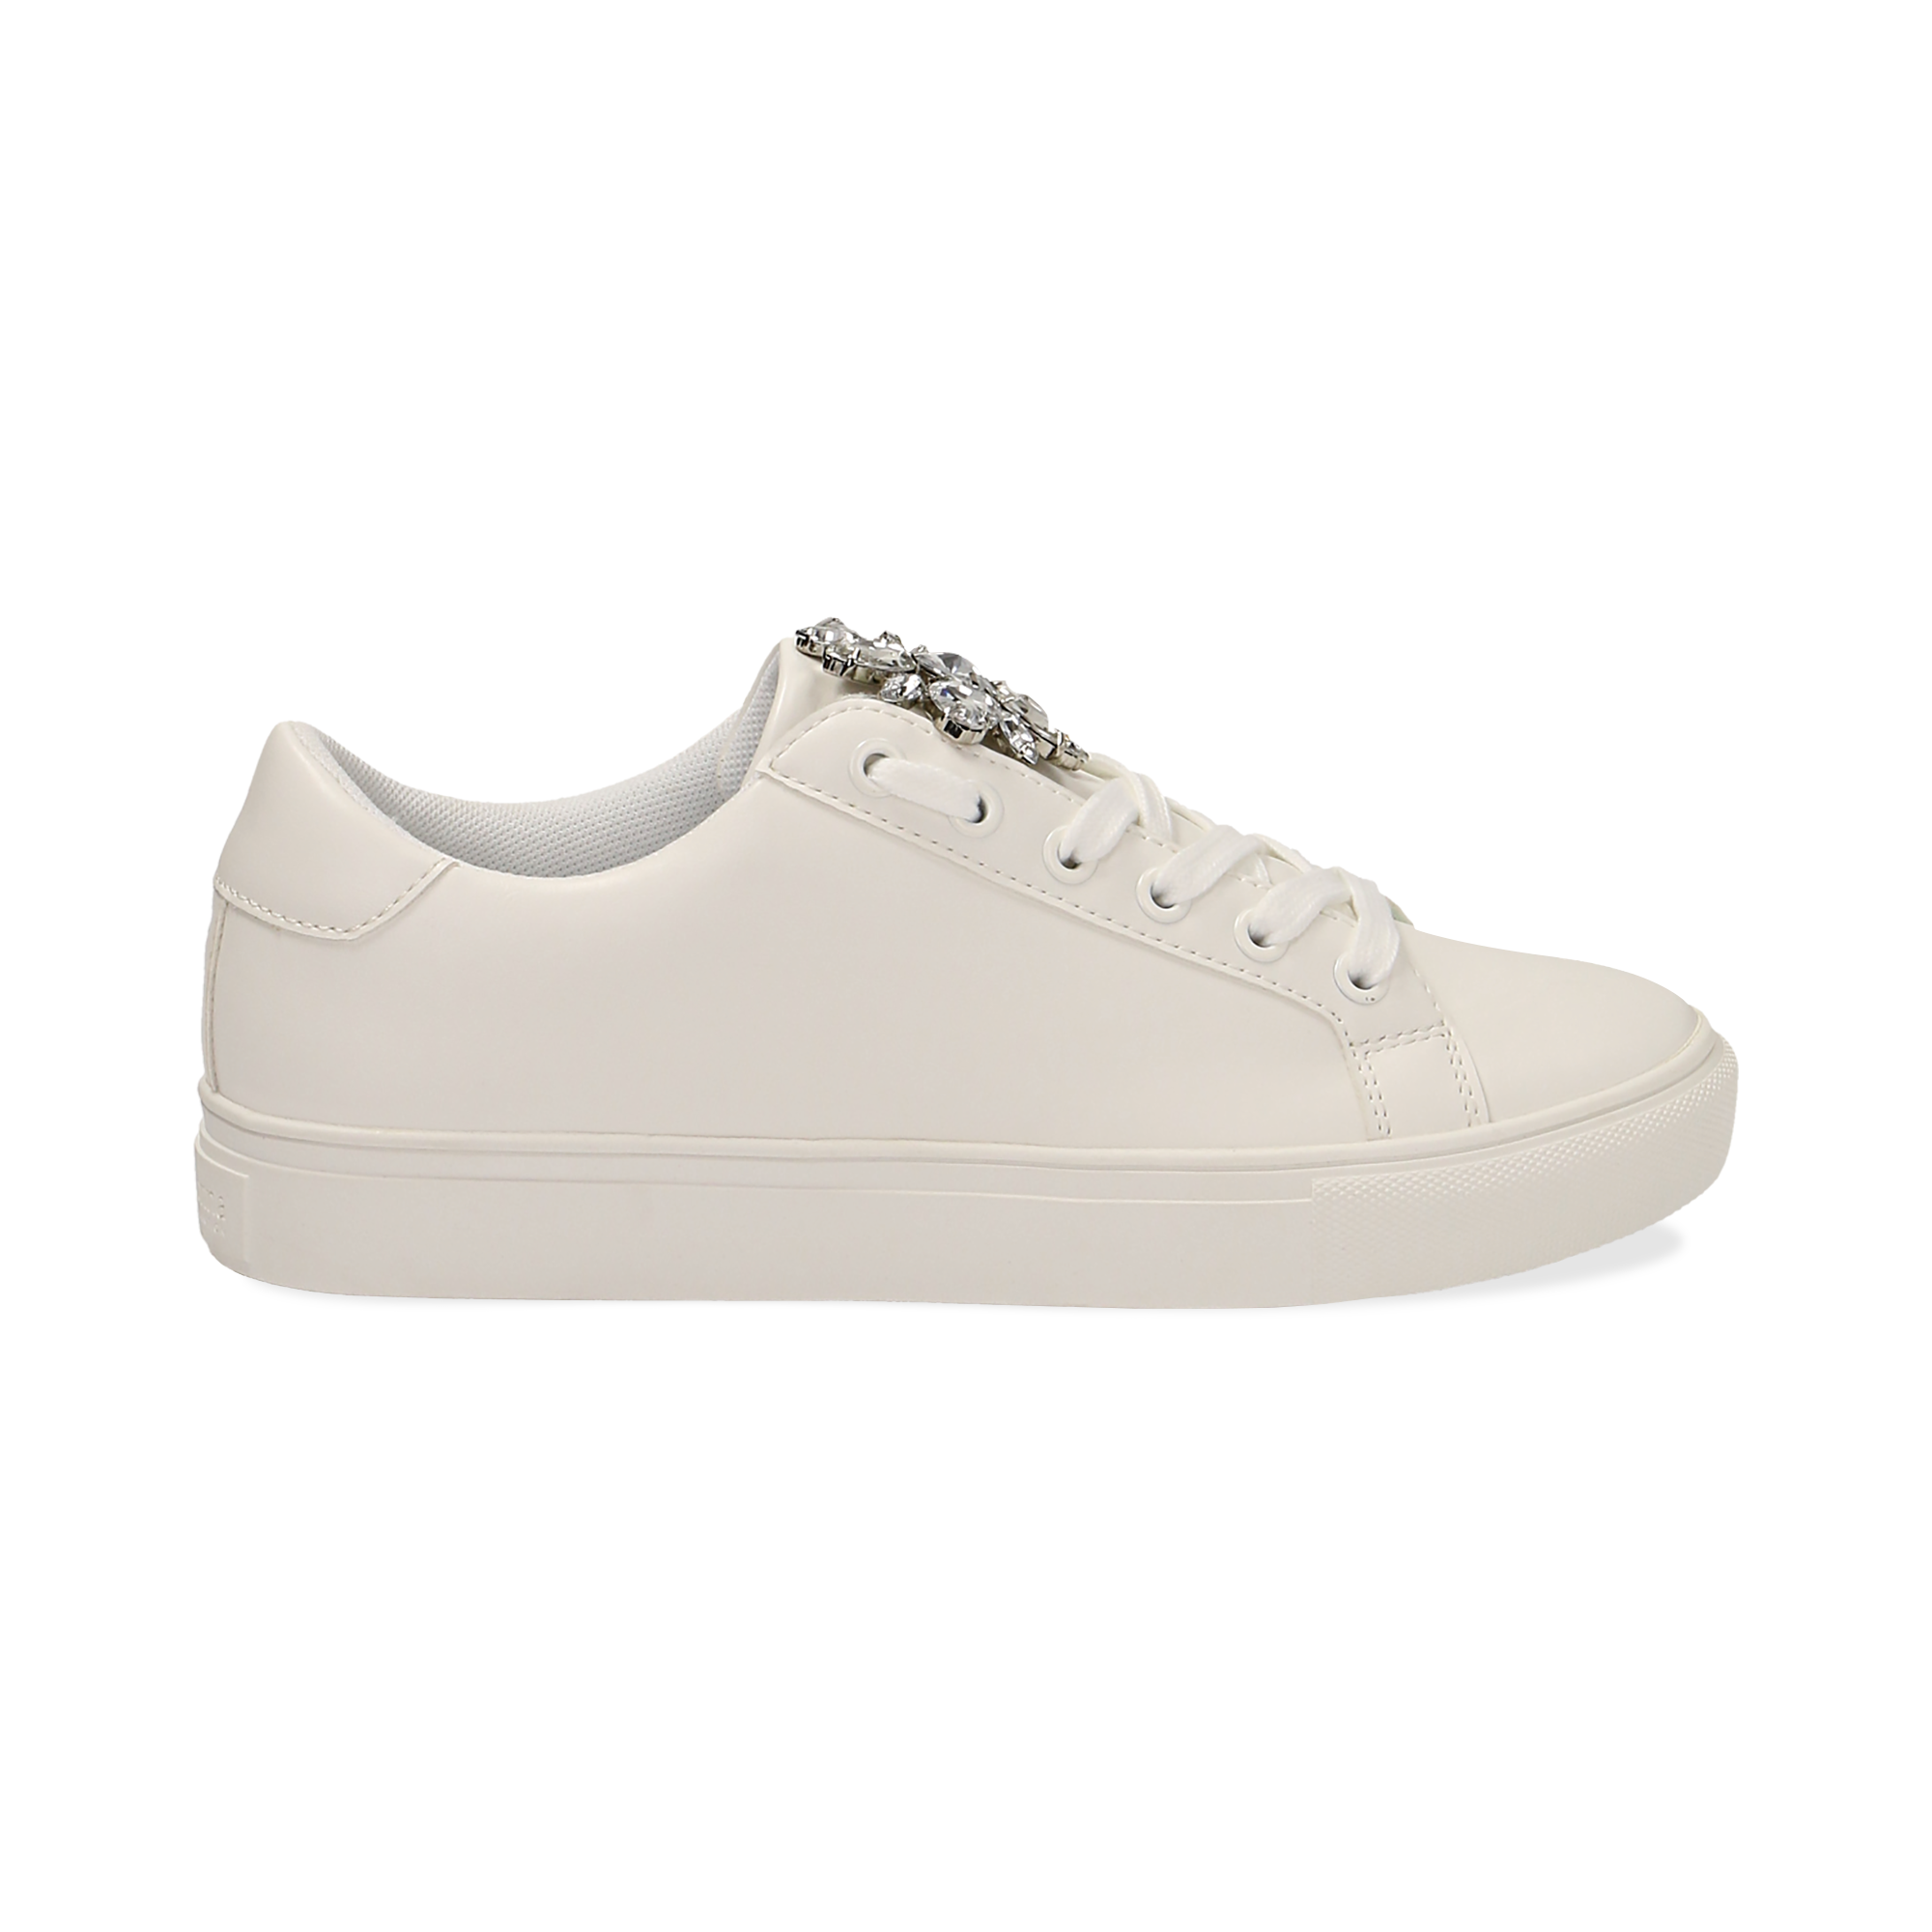 Sneakers Sneakers Donna Bianche Eco Pelle E Gemme Primadonna